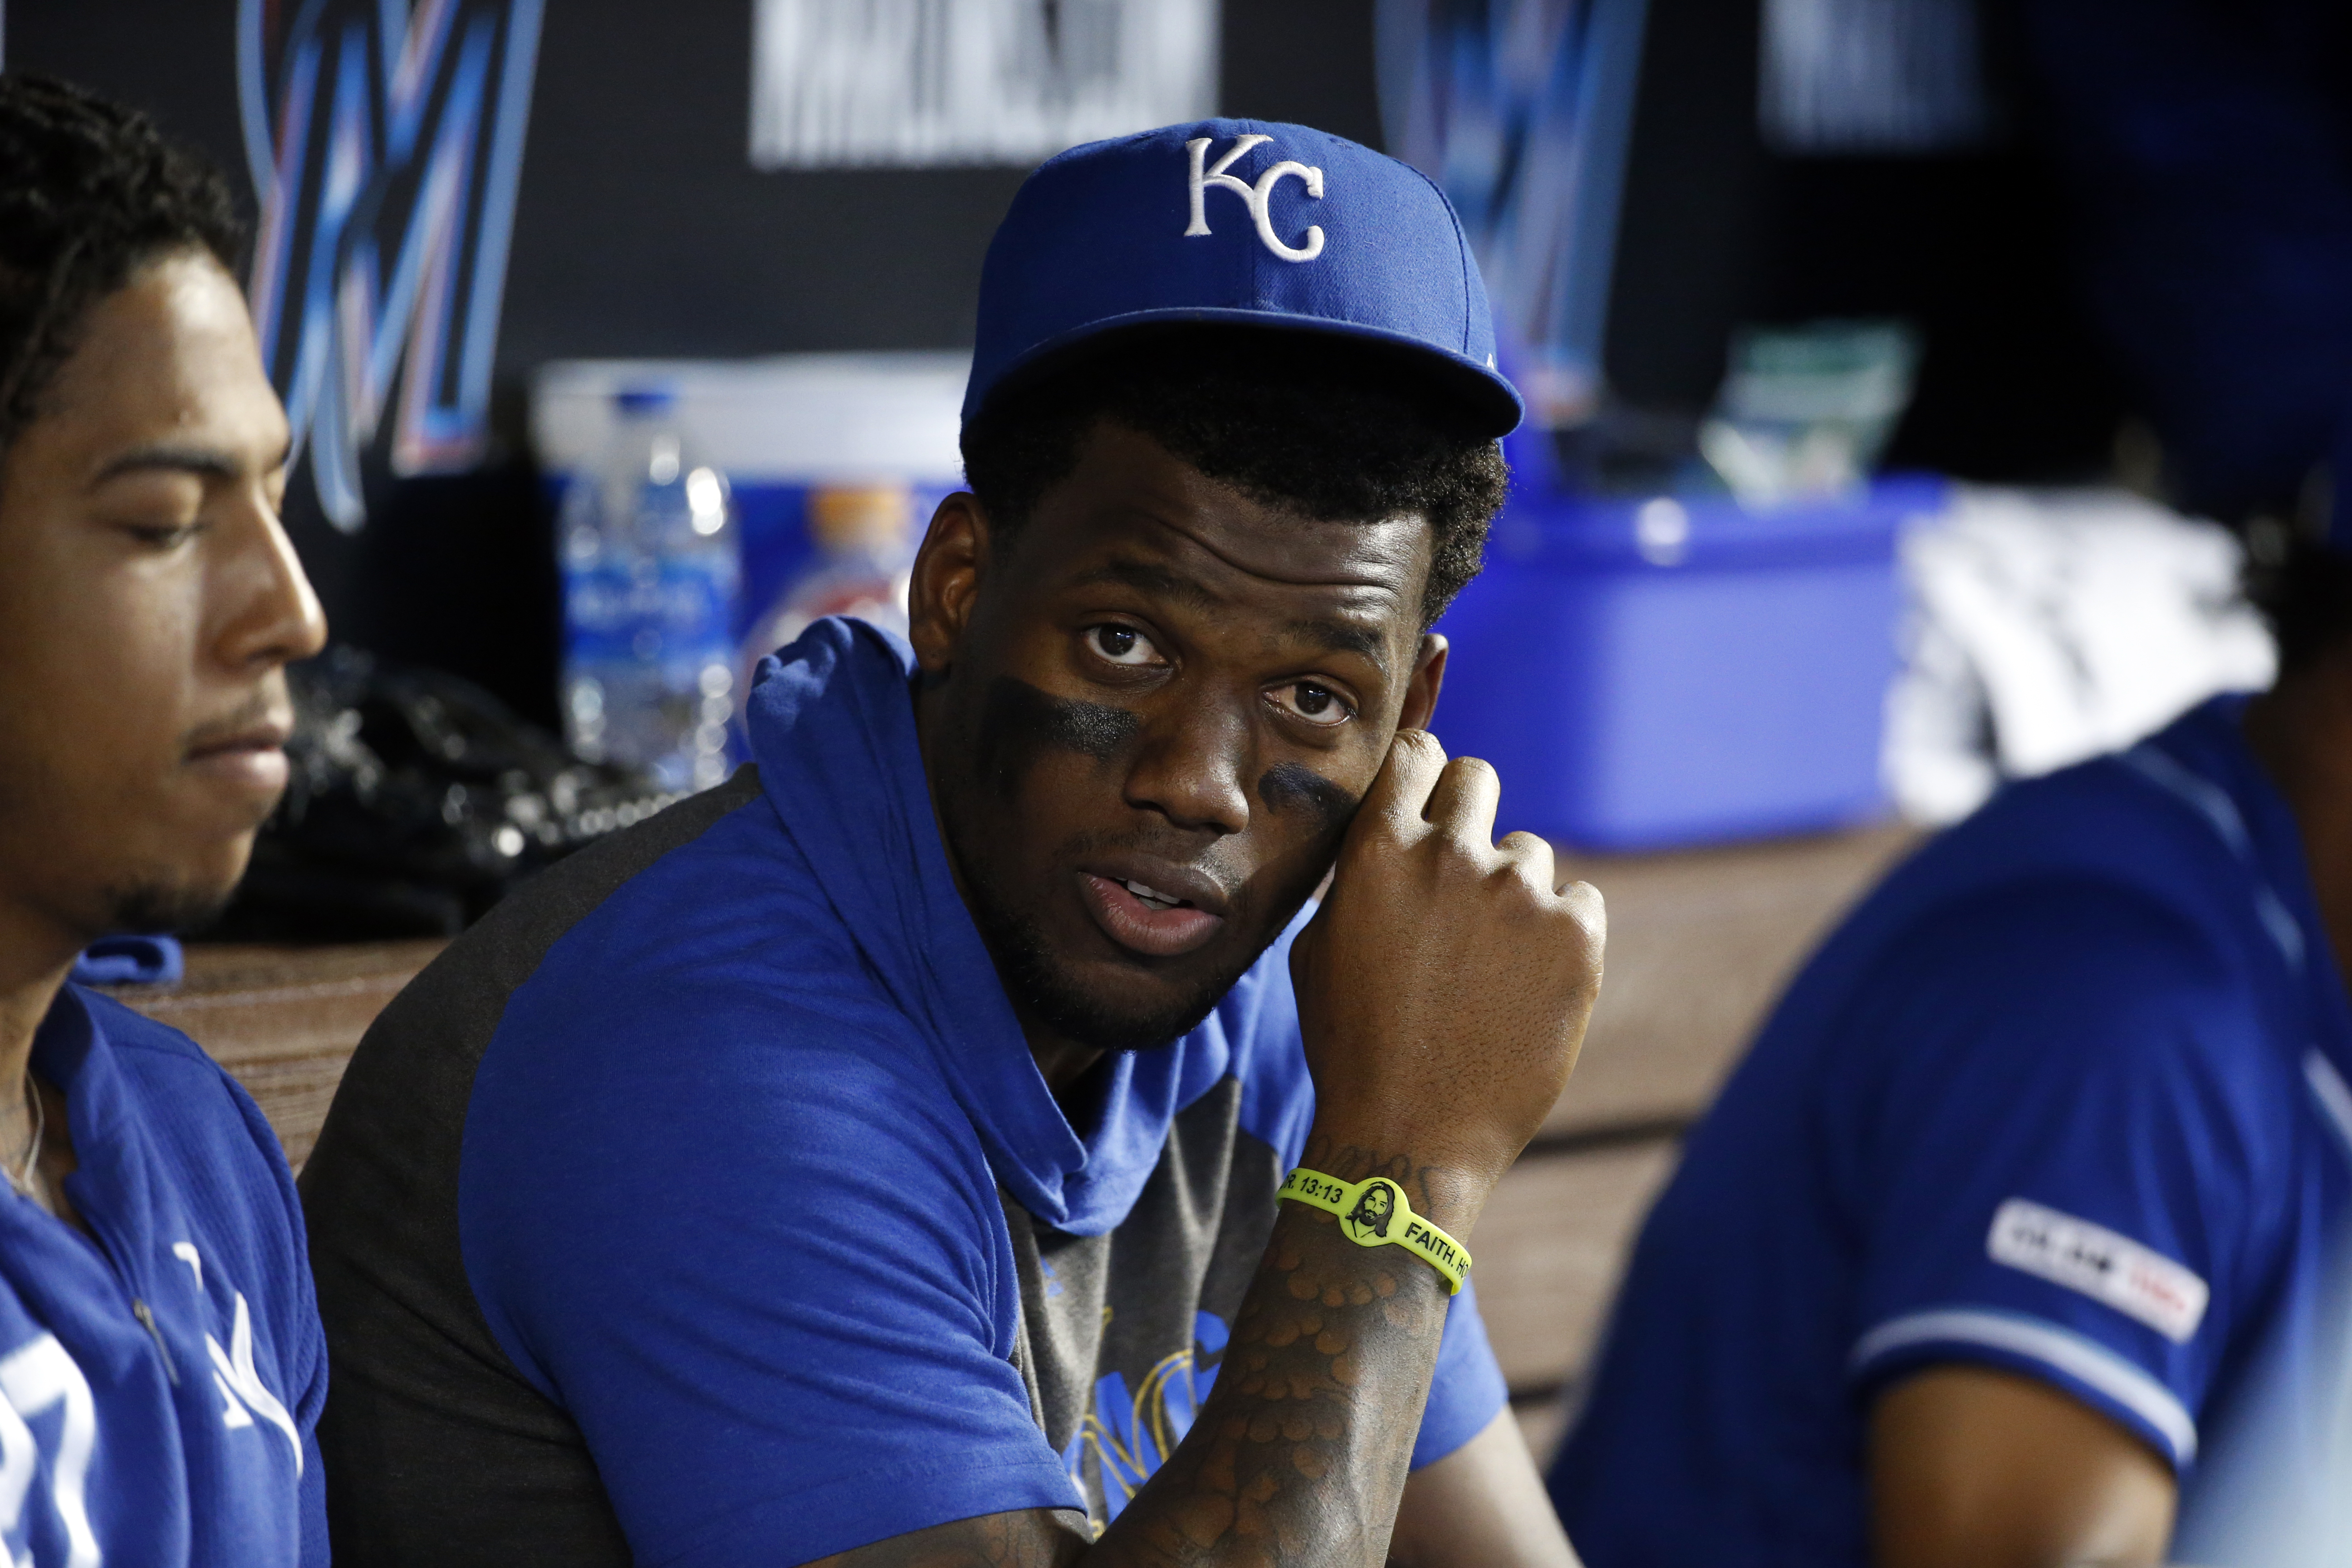 Jorge Soler #12 of the Kansas City Royals looks on in the dugout during the game against the Miami Marlins at Marlins Park on Sunday, September 8, 2019 in Miami, Florida.